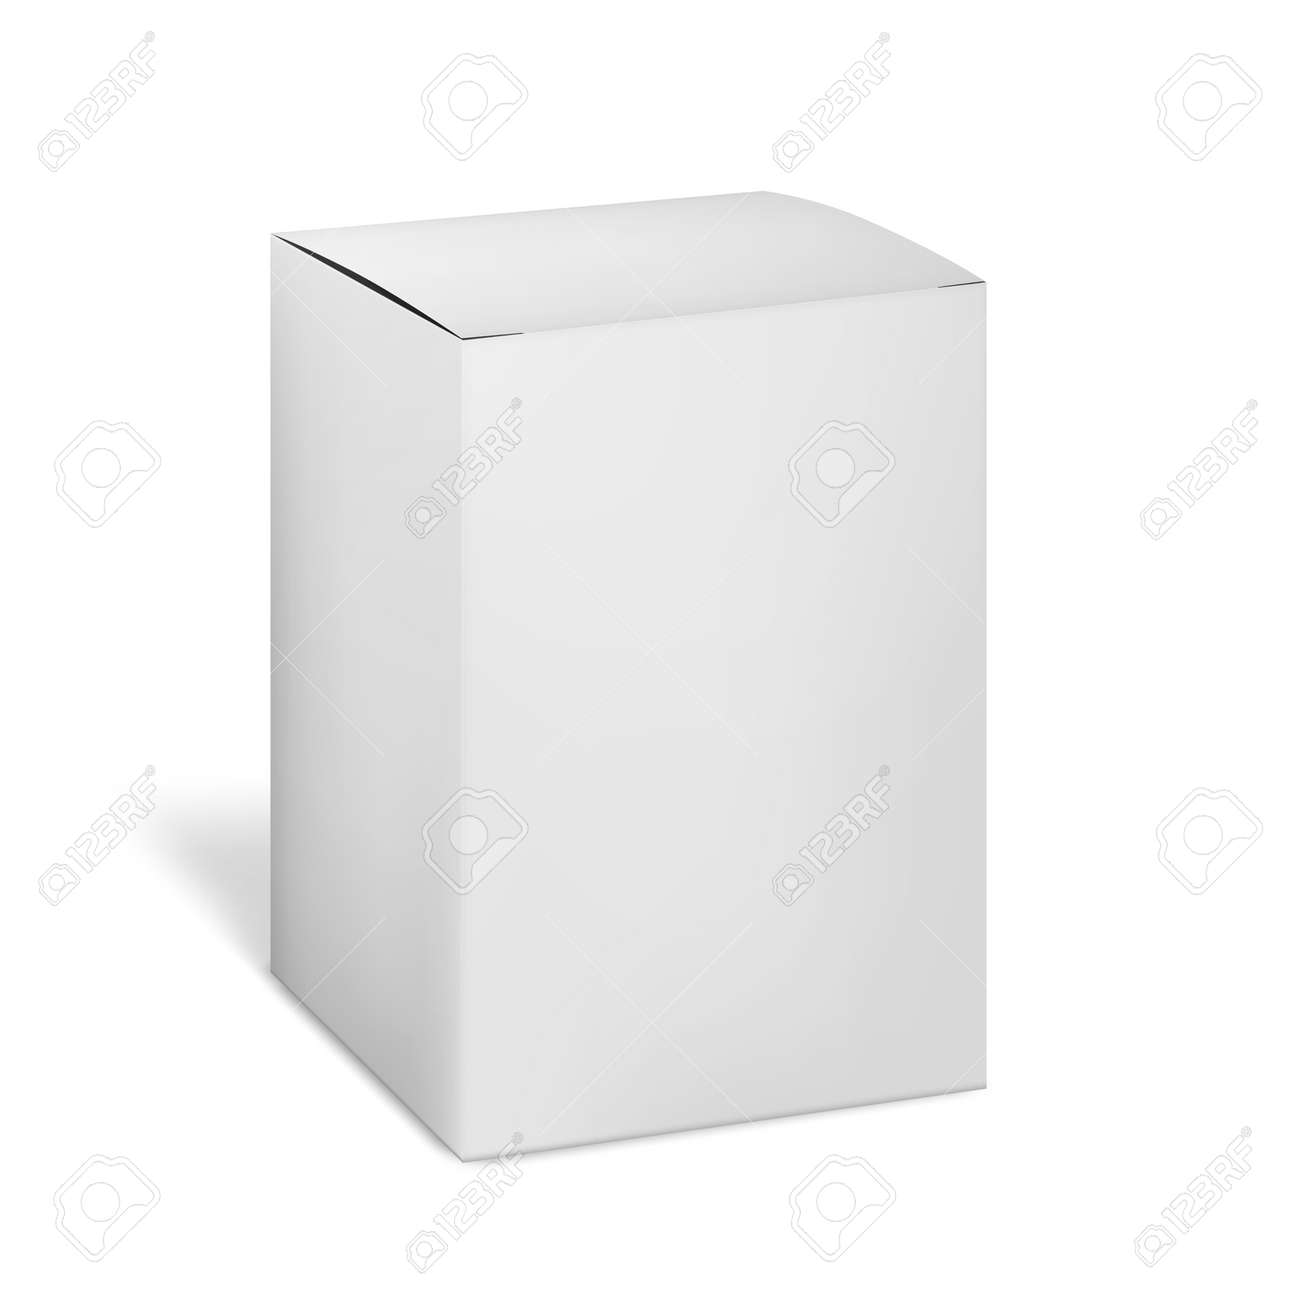 Blank carton box isolated on white background, vector mockup. Paper cardboard package. Mock-up for design - 149834662